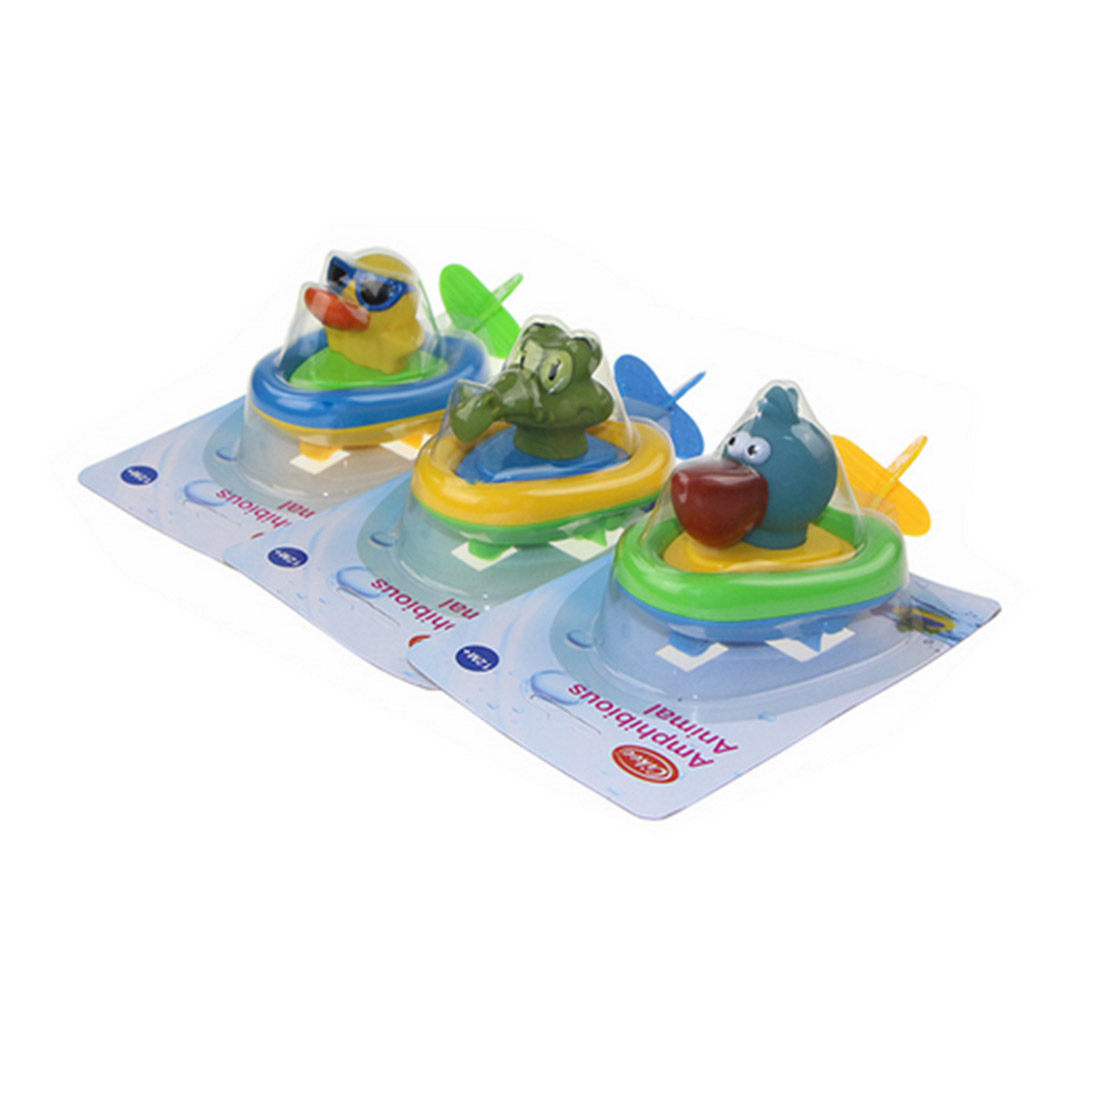 NFSTRIKE Animal Boat Baby Bath Bracing Wire Clockwork Floating Water Bath Toy Games Outdoor Aquatic Toys For Kids - Type Random